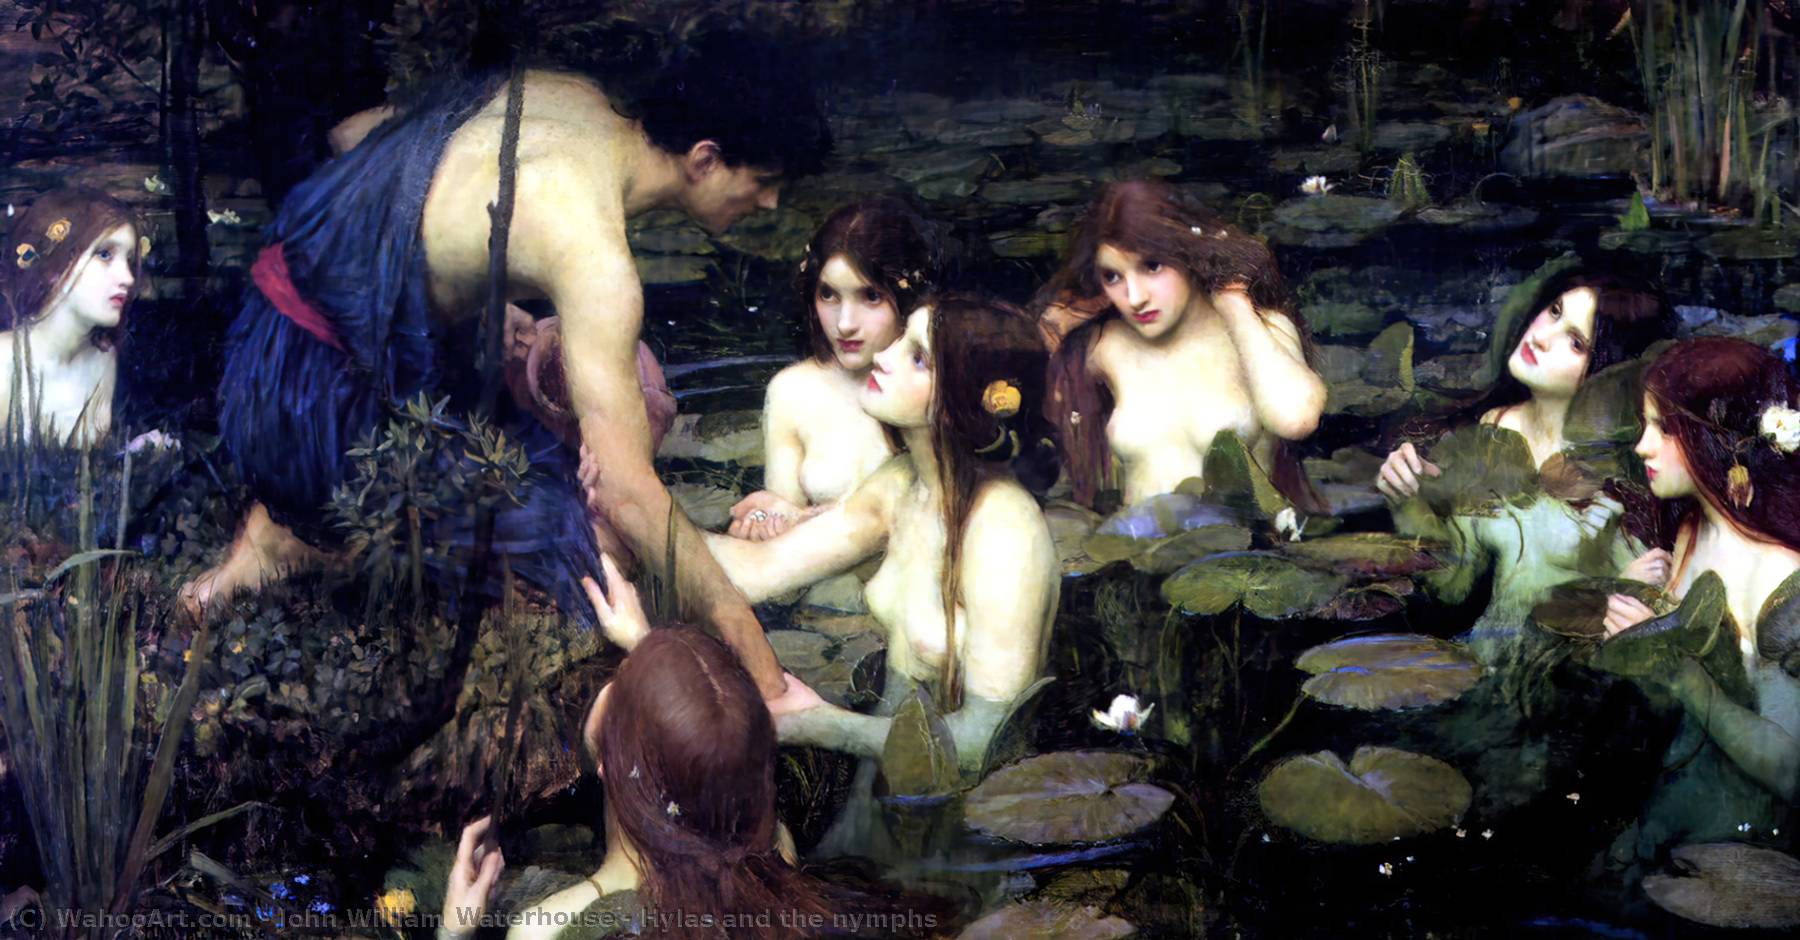 Buy Museum Art Reproductions | Hylas and the nymphs by John William Waterhouse | Most-Famous-Paintings.com